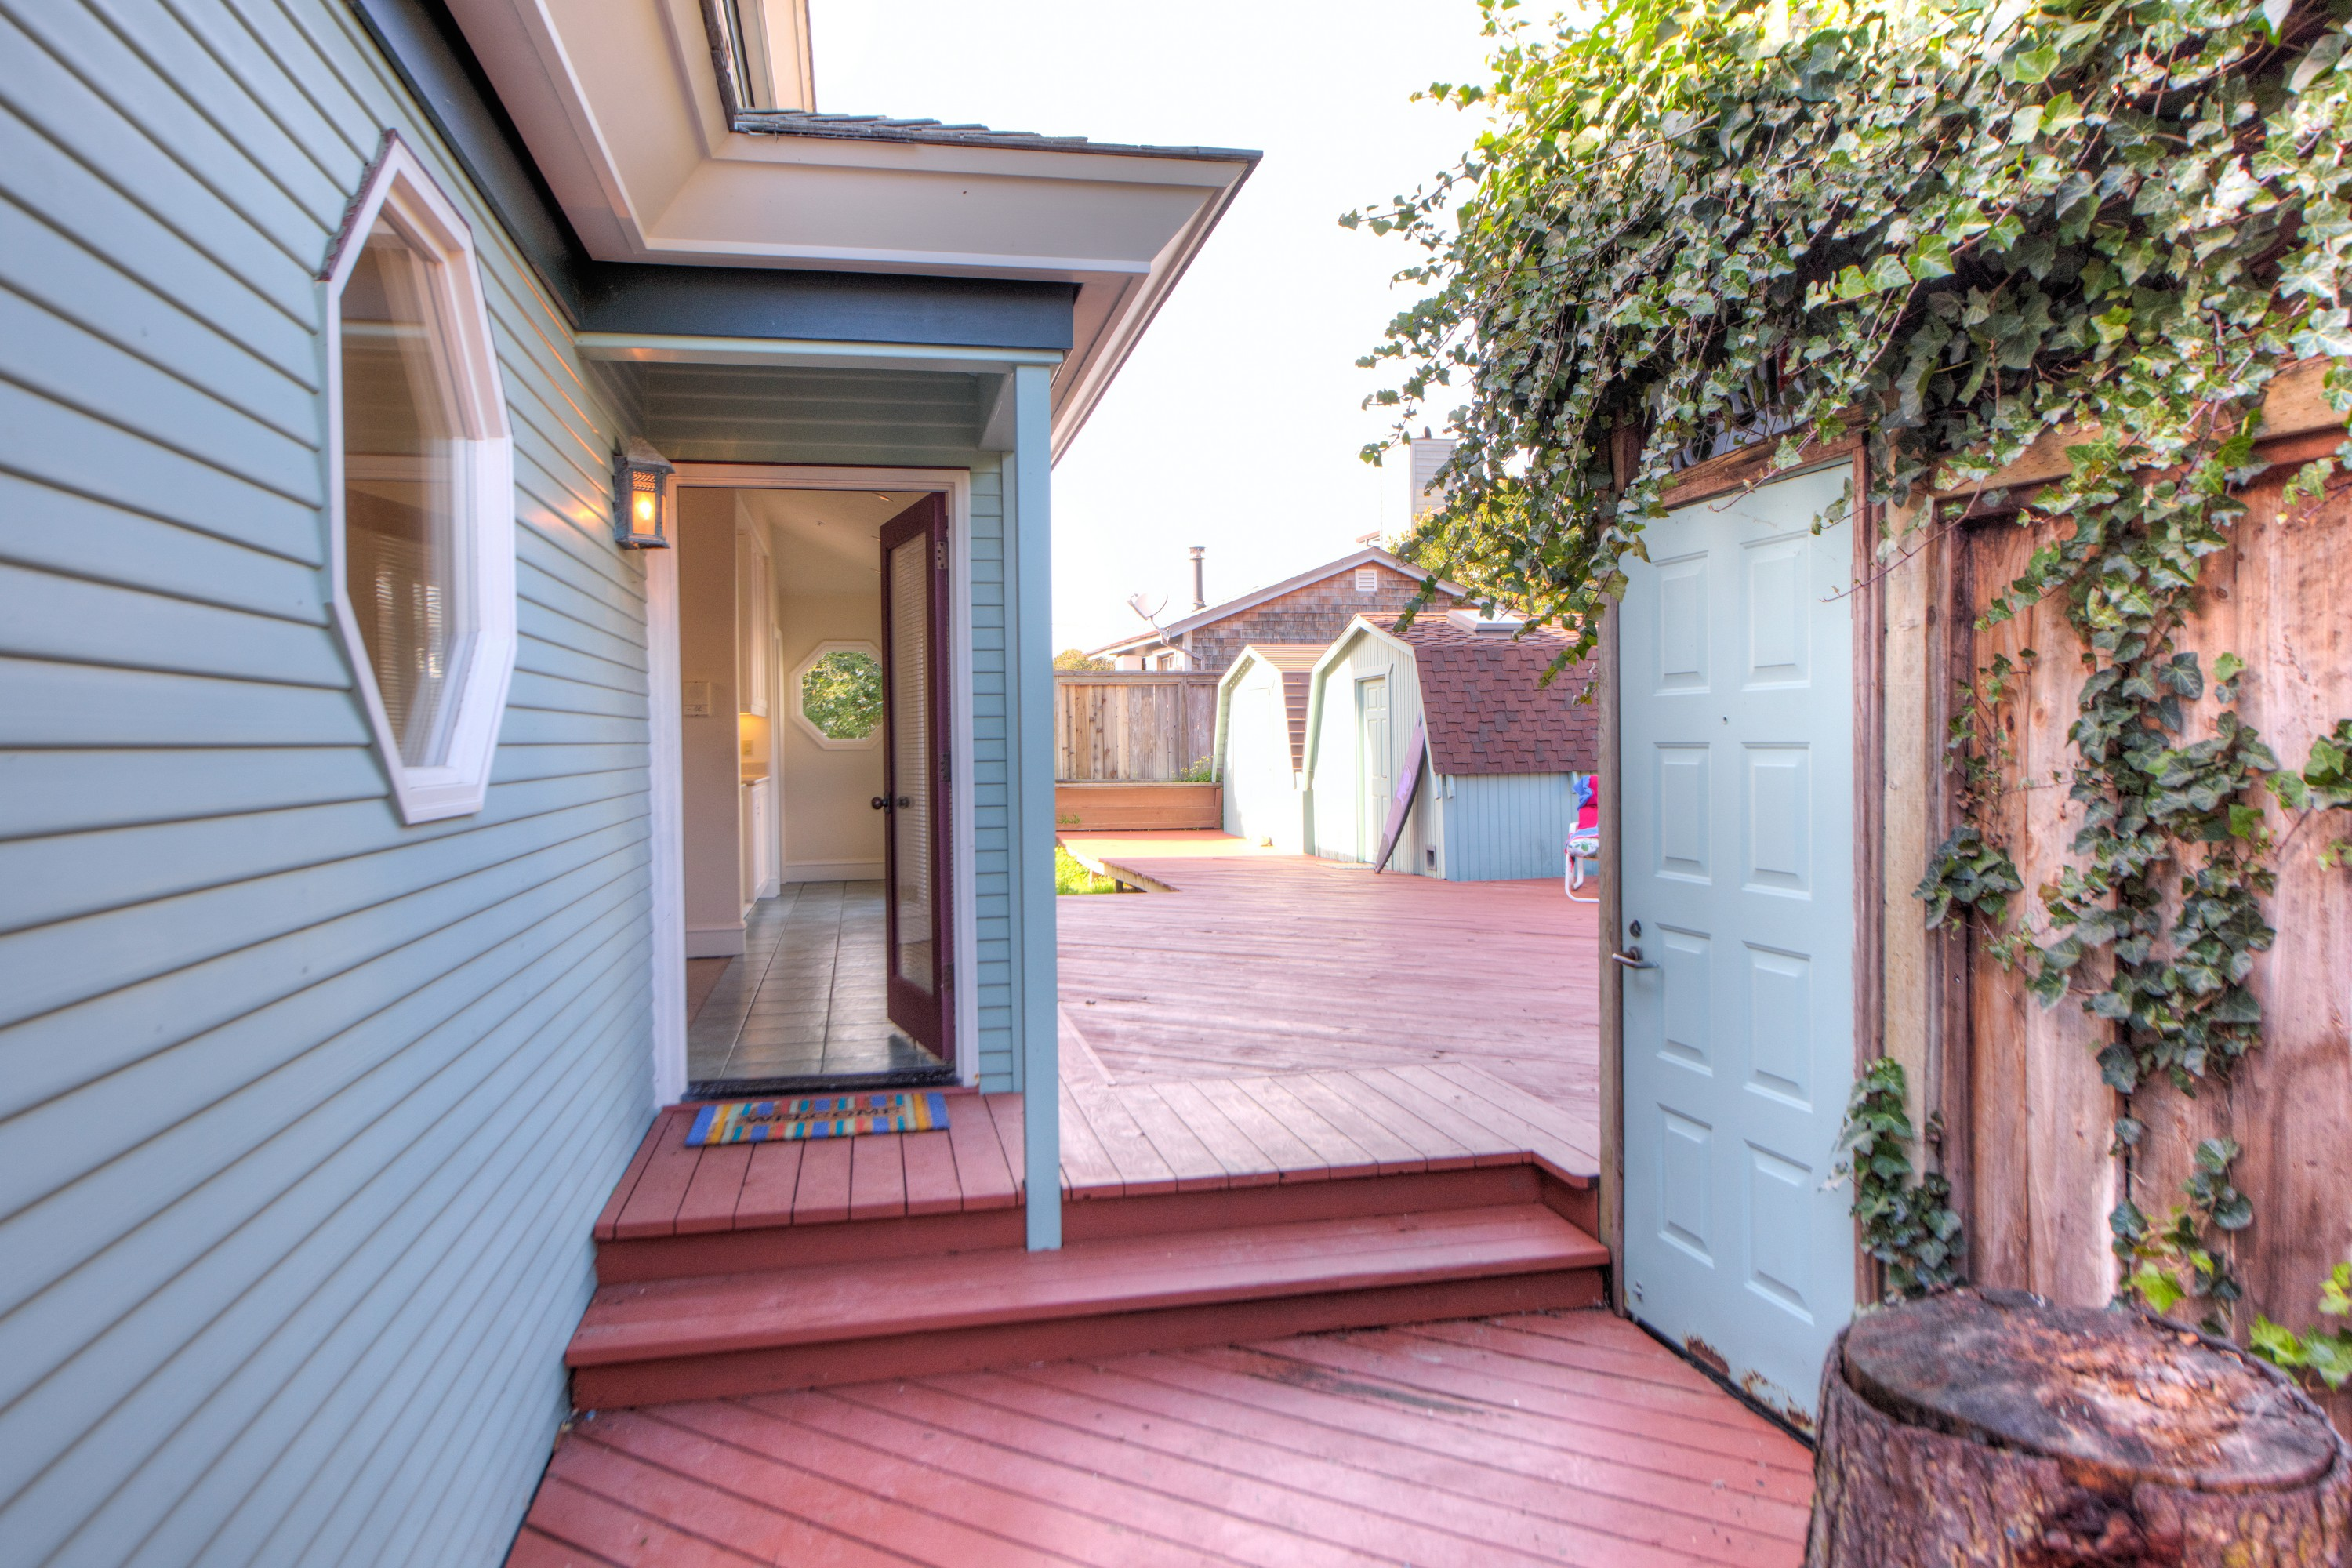 Single Family Home for Sale at Stinson Beach Custom Home Steps to Town 12 Calle Del Pradero Stinson Beach, California 94970 United States